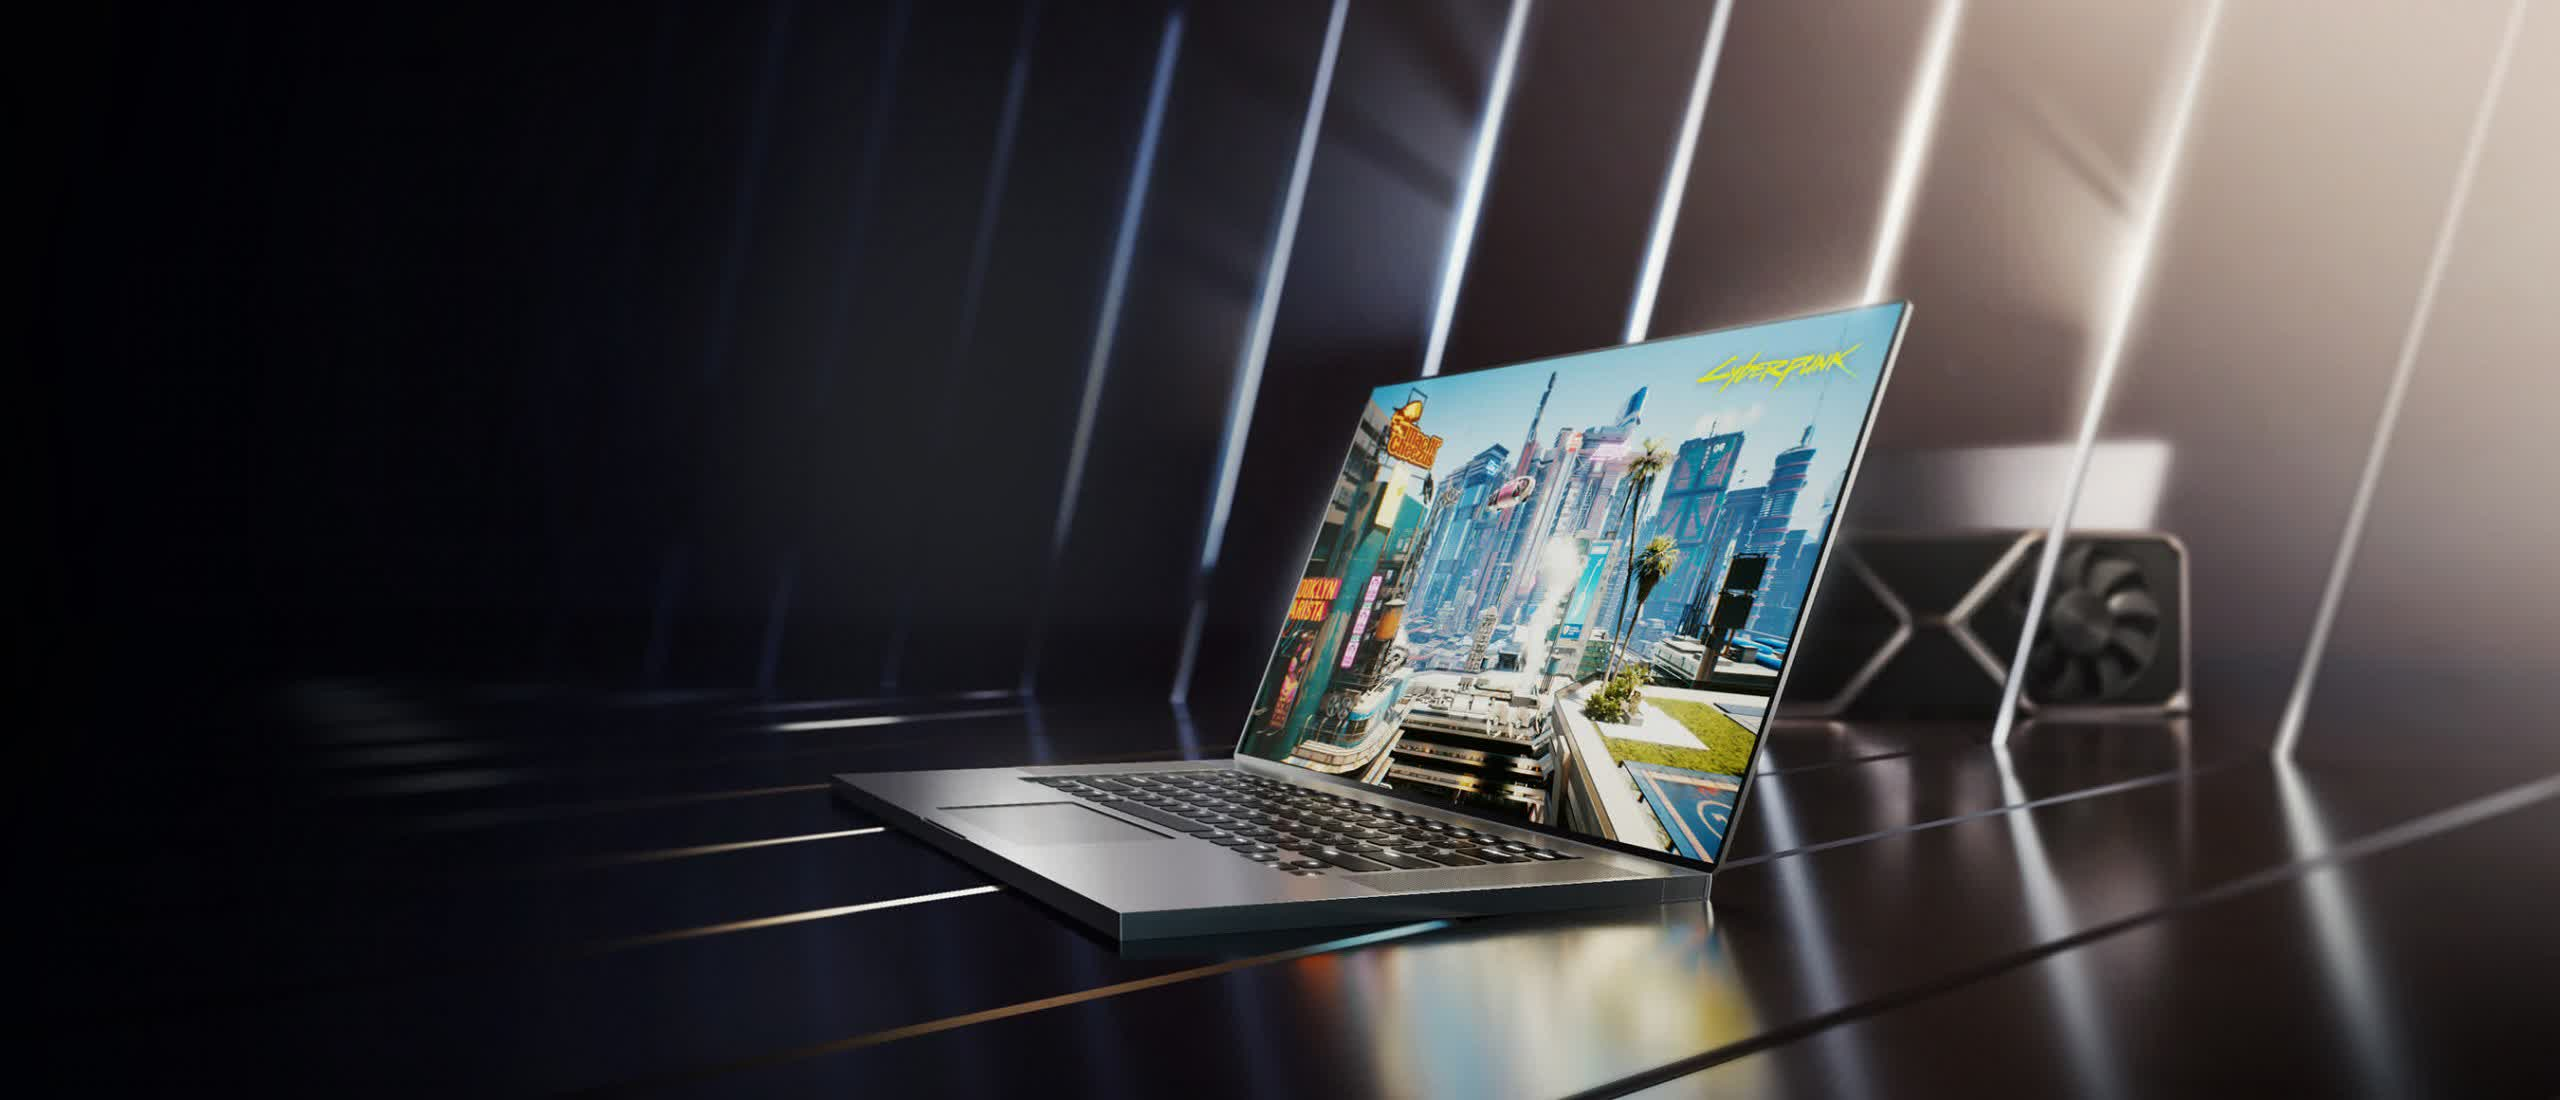 Over 70 new laptops will feature GeForce RTX 30 Series GPUs